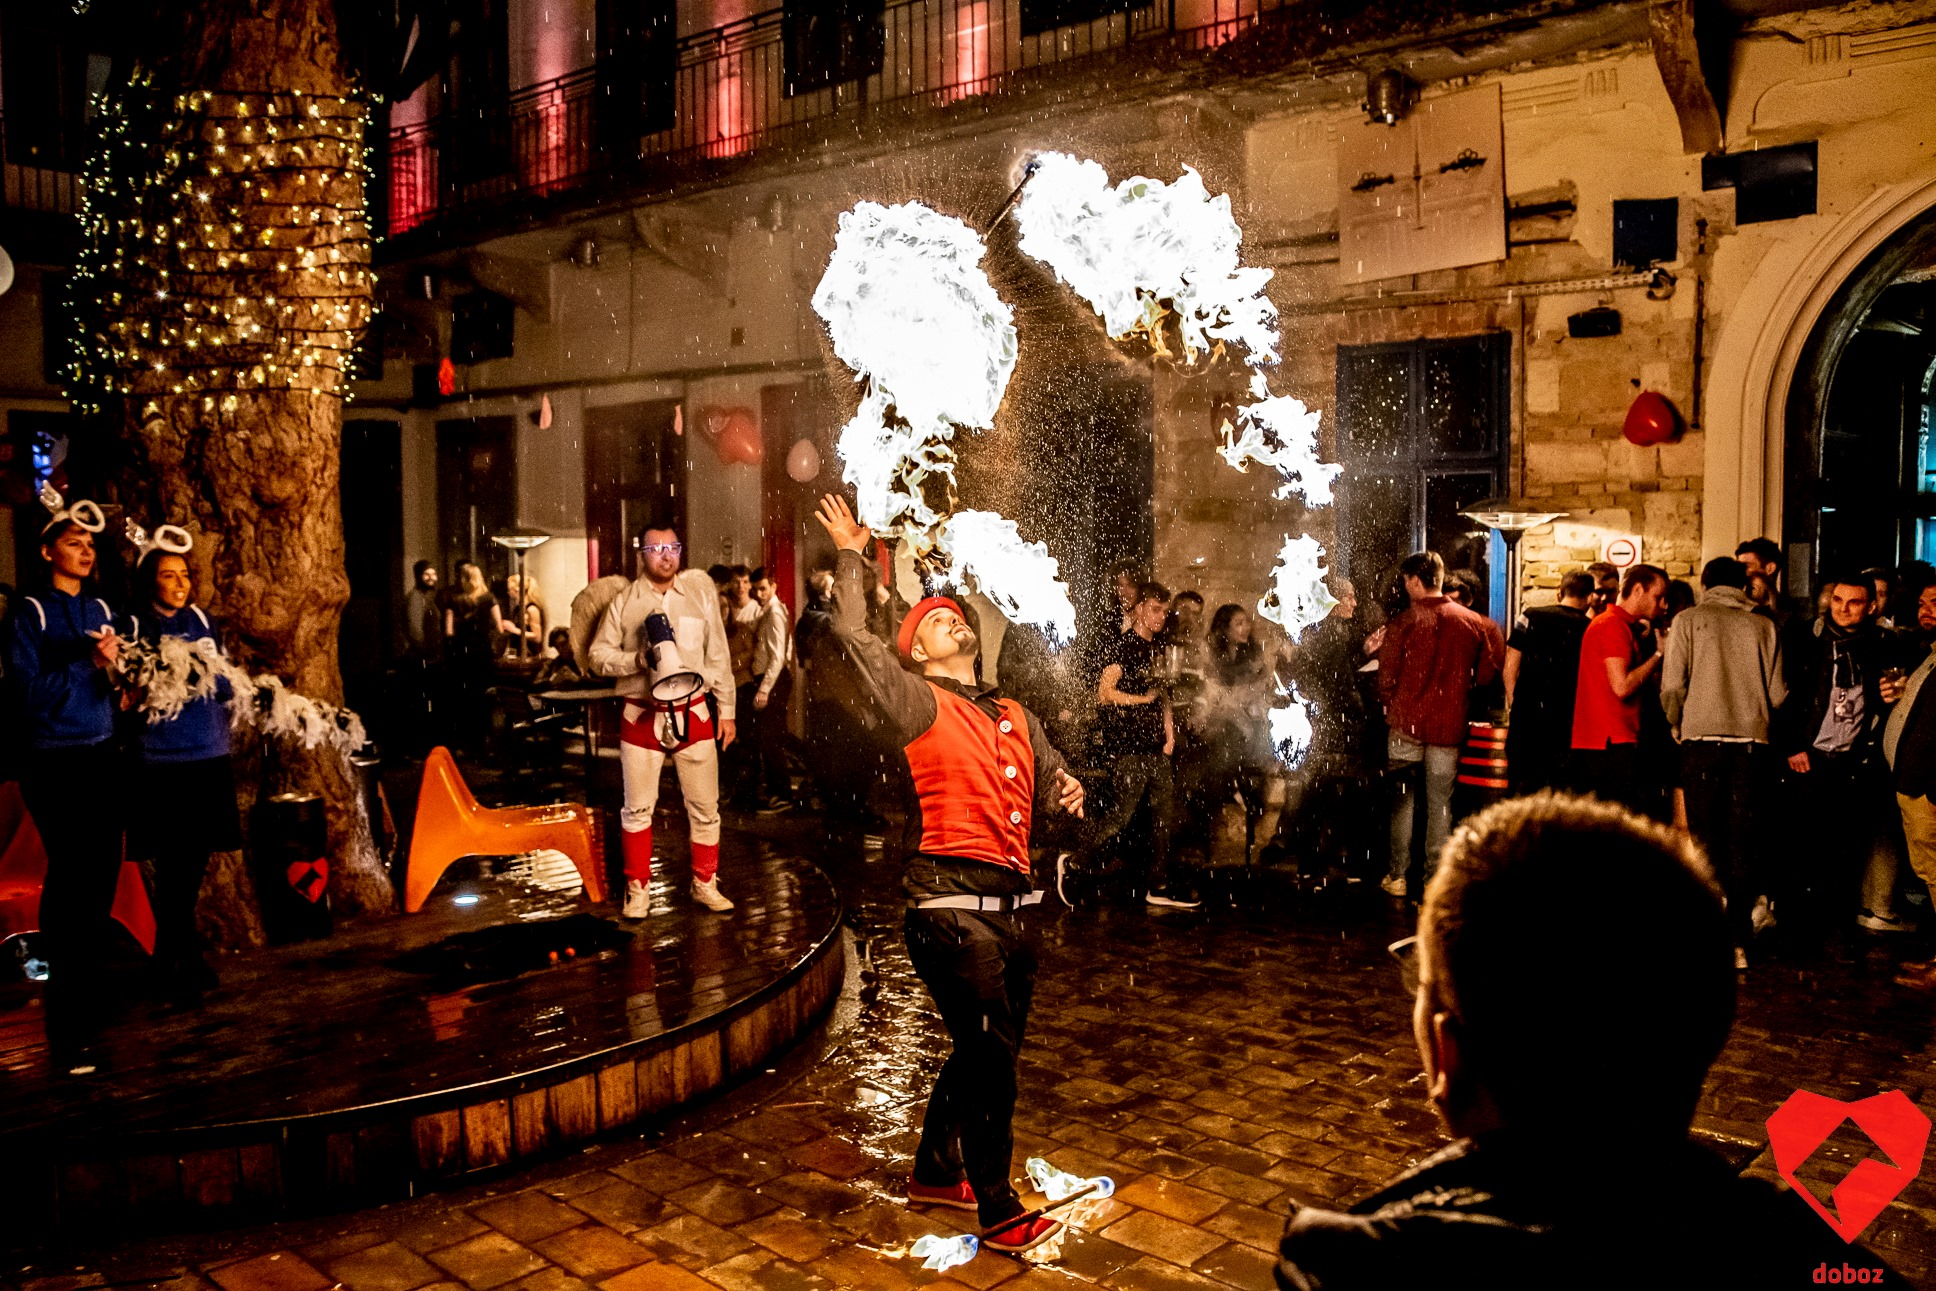 fire breather with read waistcoat stood in a dimly lit courtyard surrounded by people watching